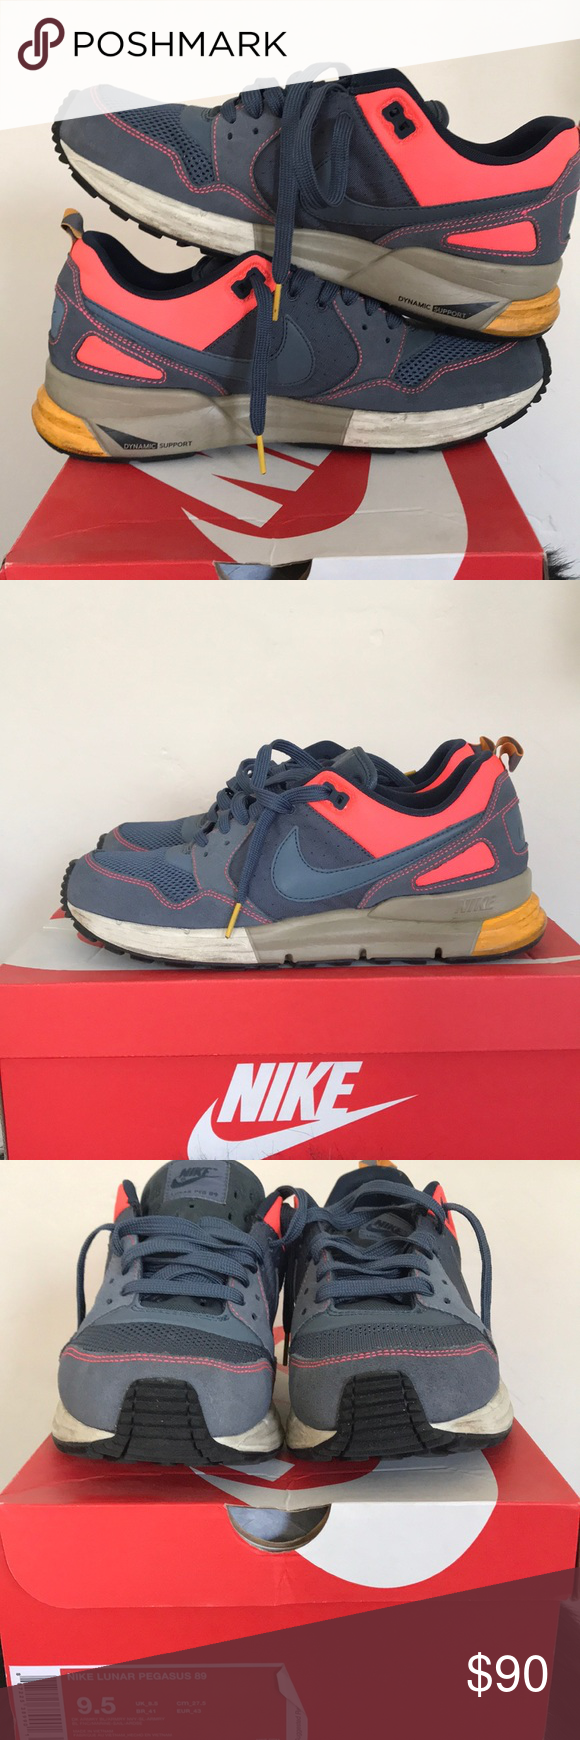 281f5ebcfe255 ... germany nike lunar pegasus 89 sneakers used good condition nike lunar  pegasus 89. featuring a